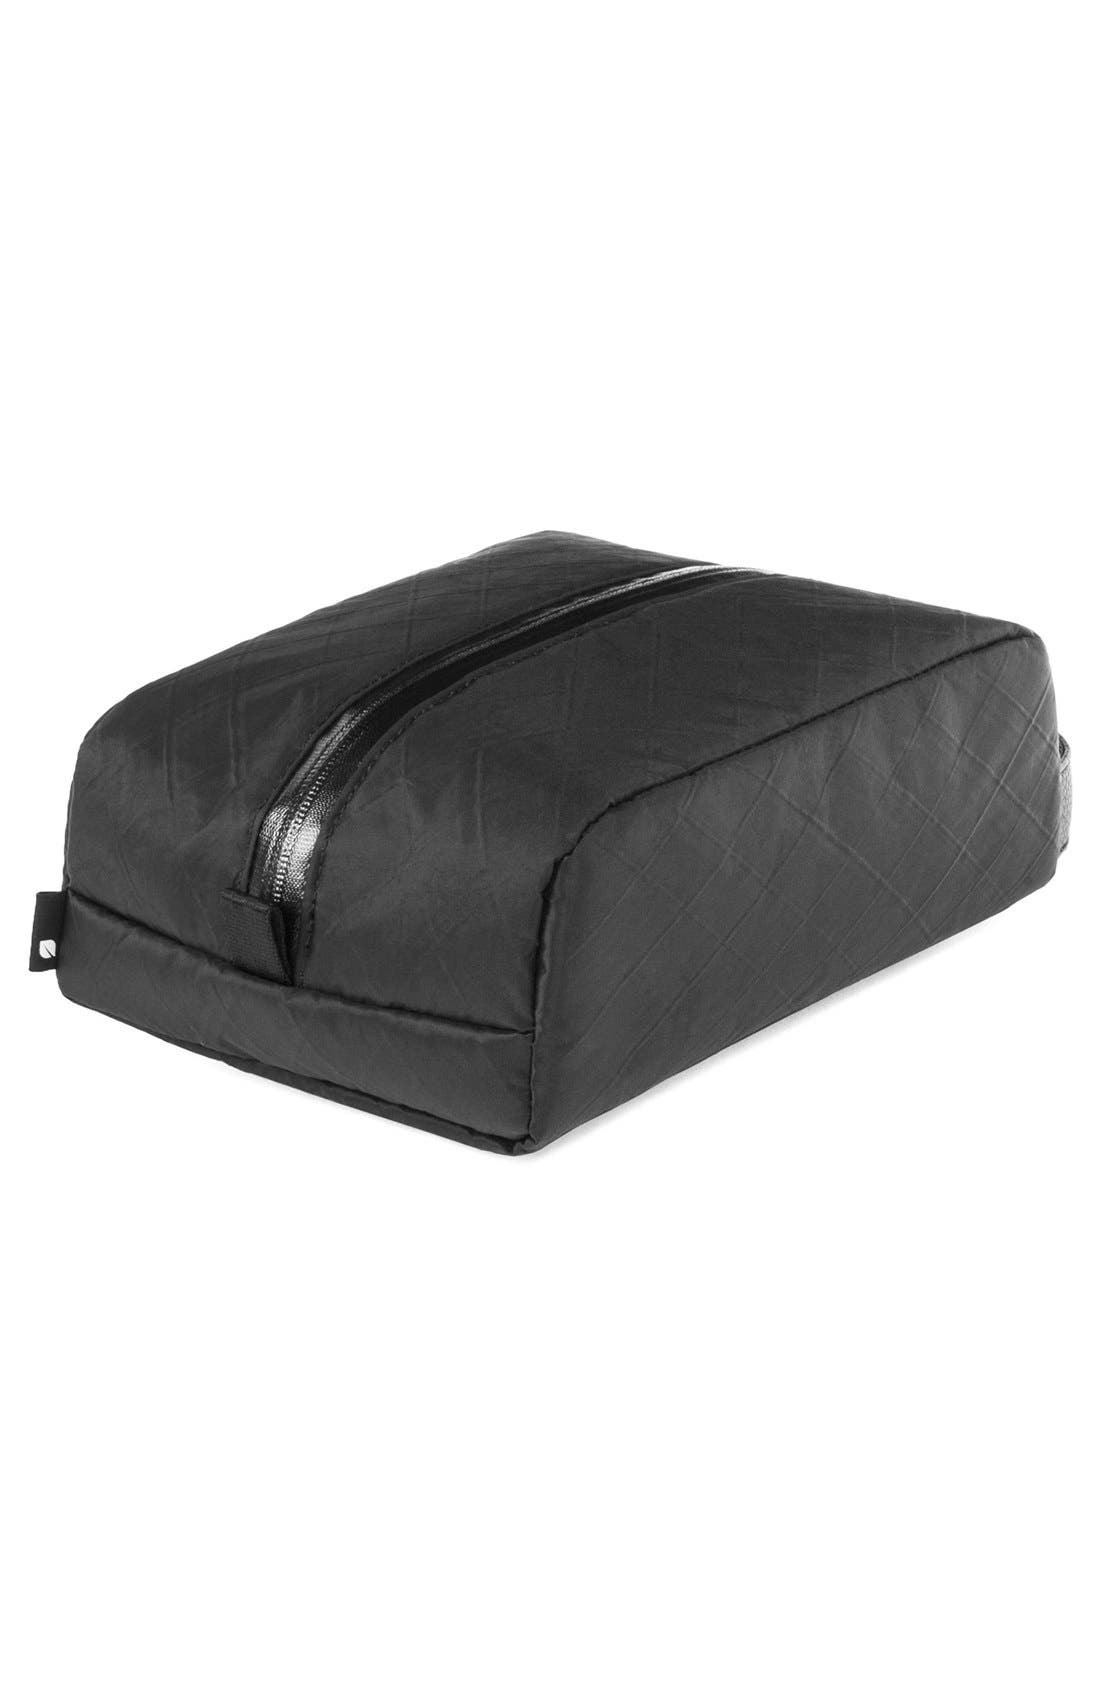 Diamond Wire Dopp Kit,                             Alternate thumbnail 11, color,                             Black